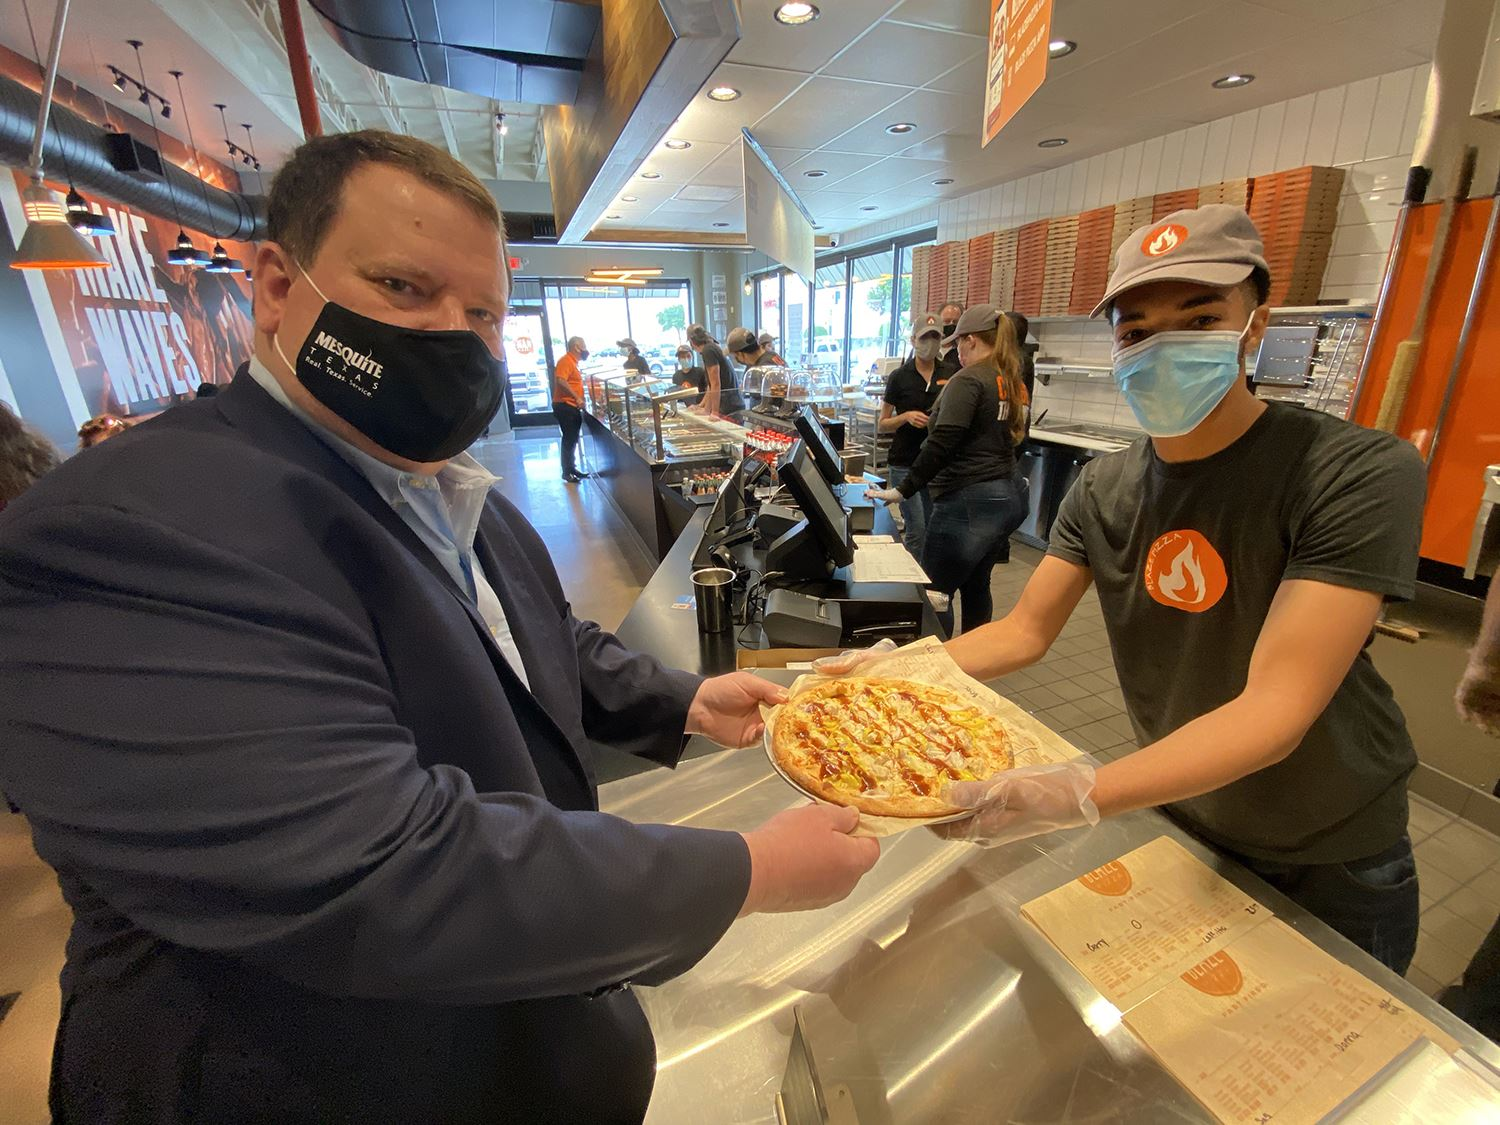 5-4-21 Baze employee serves mayor his pizza